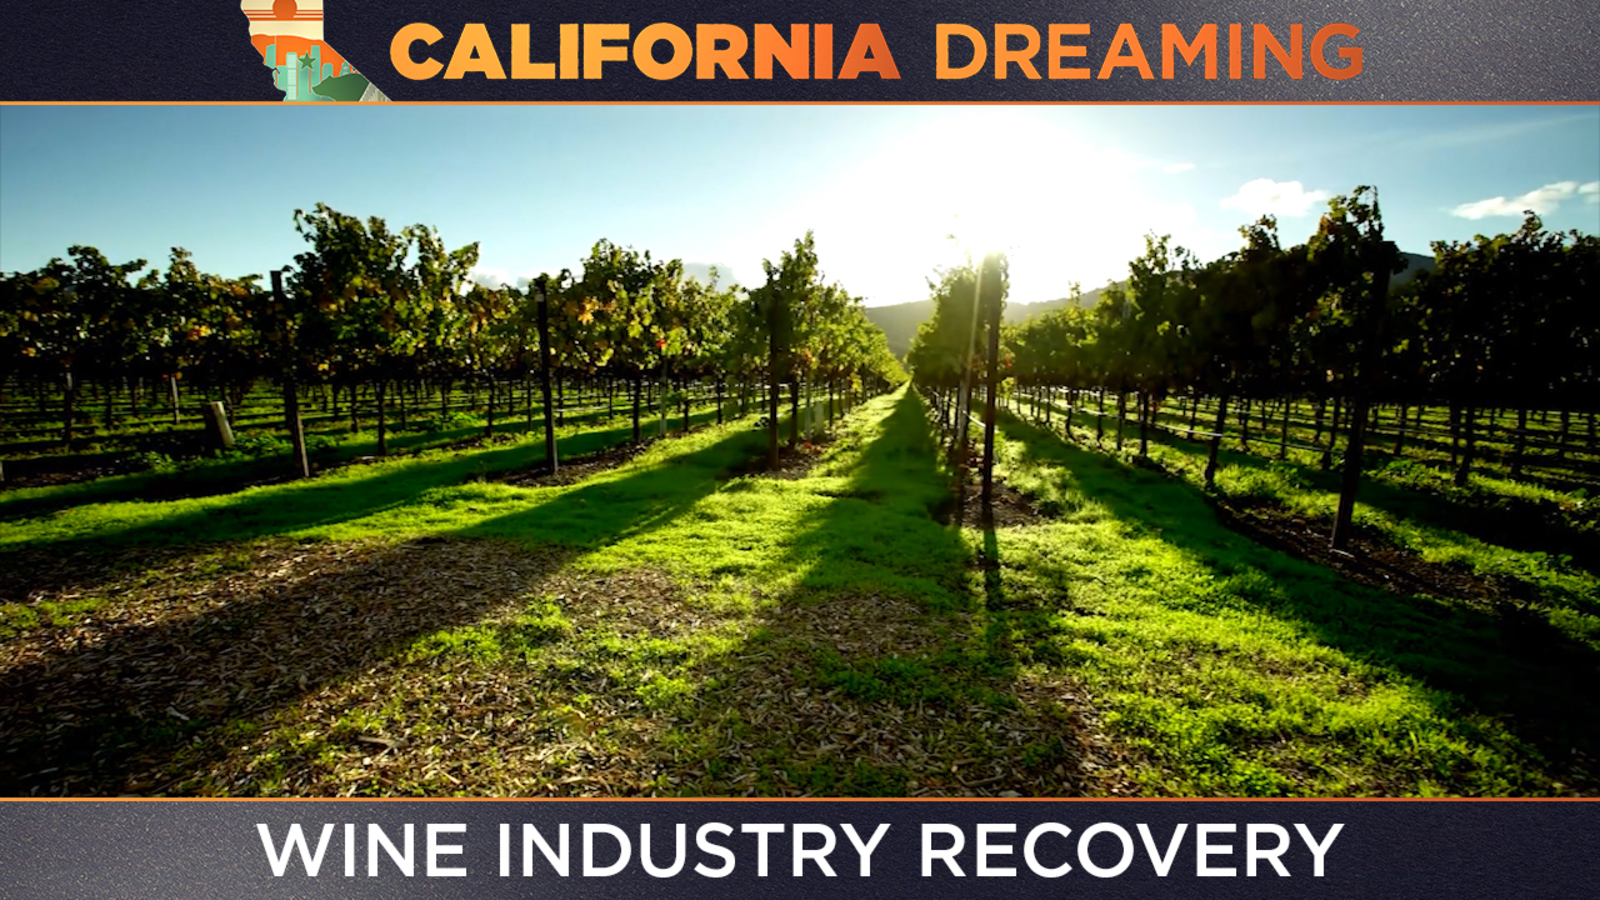 California Dreaming: Golden State's wine industry recovering following pandemic, wildfires